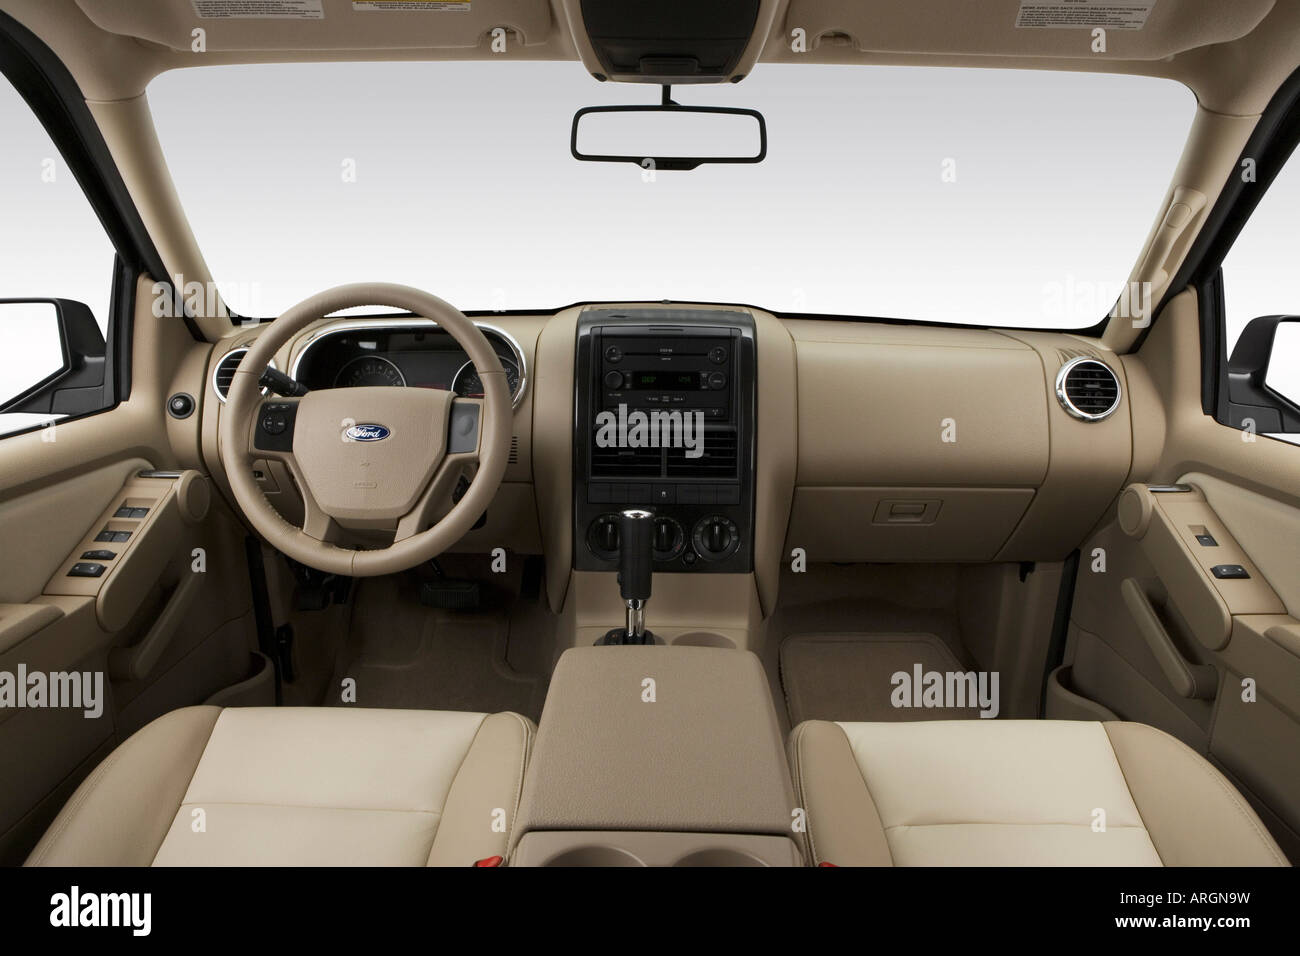 2007 Lincoln Mkz Towing Capacity >> 2007 Ford Explorer XLT in Gold - Dashboard, center console, gear Stock Photo, Royalty Free Image ...